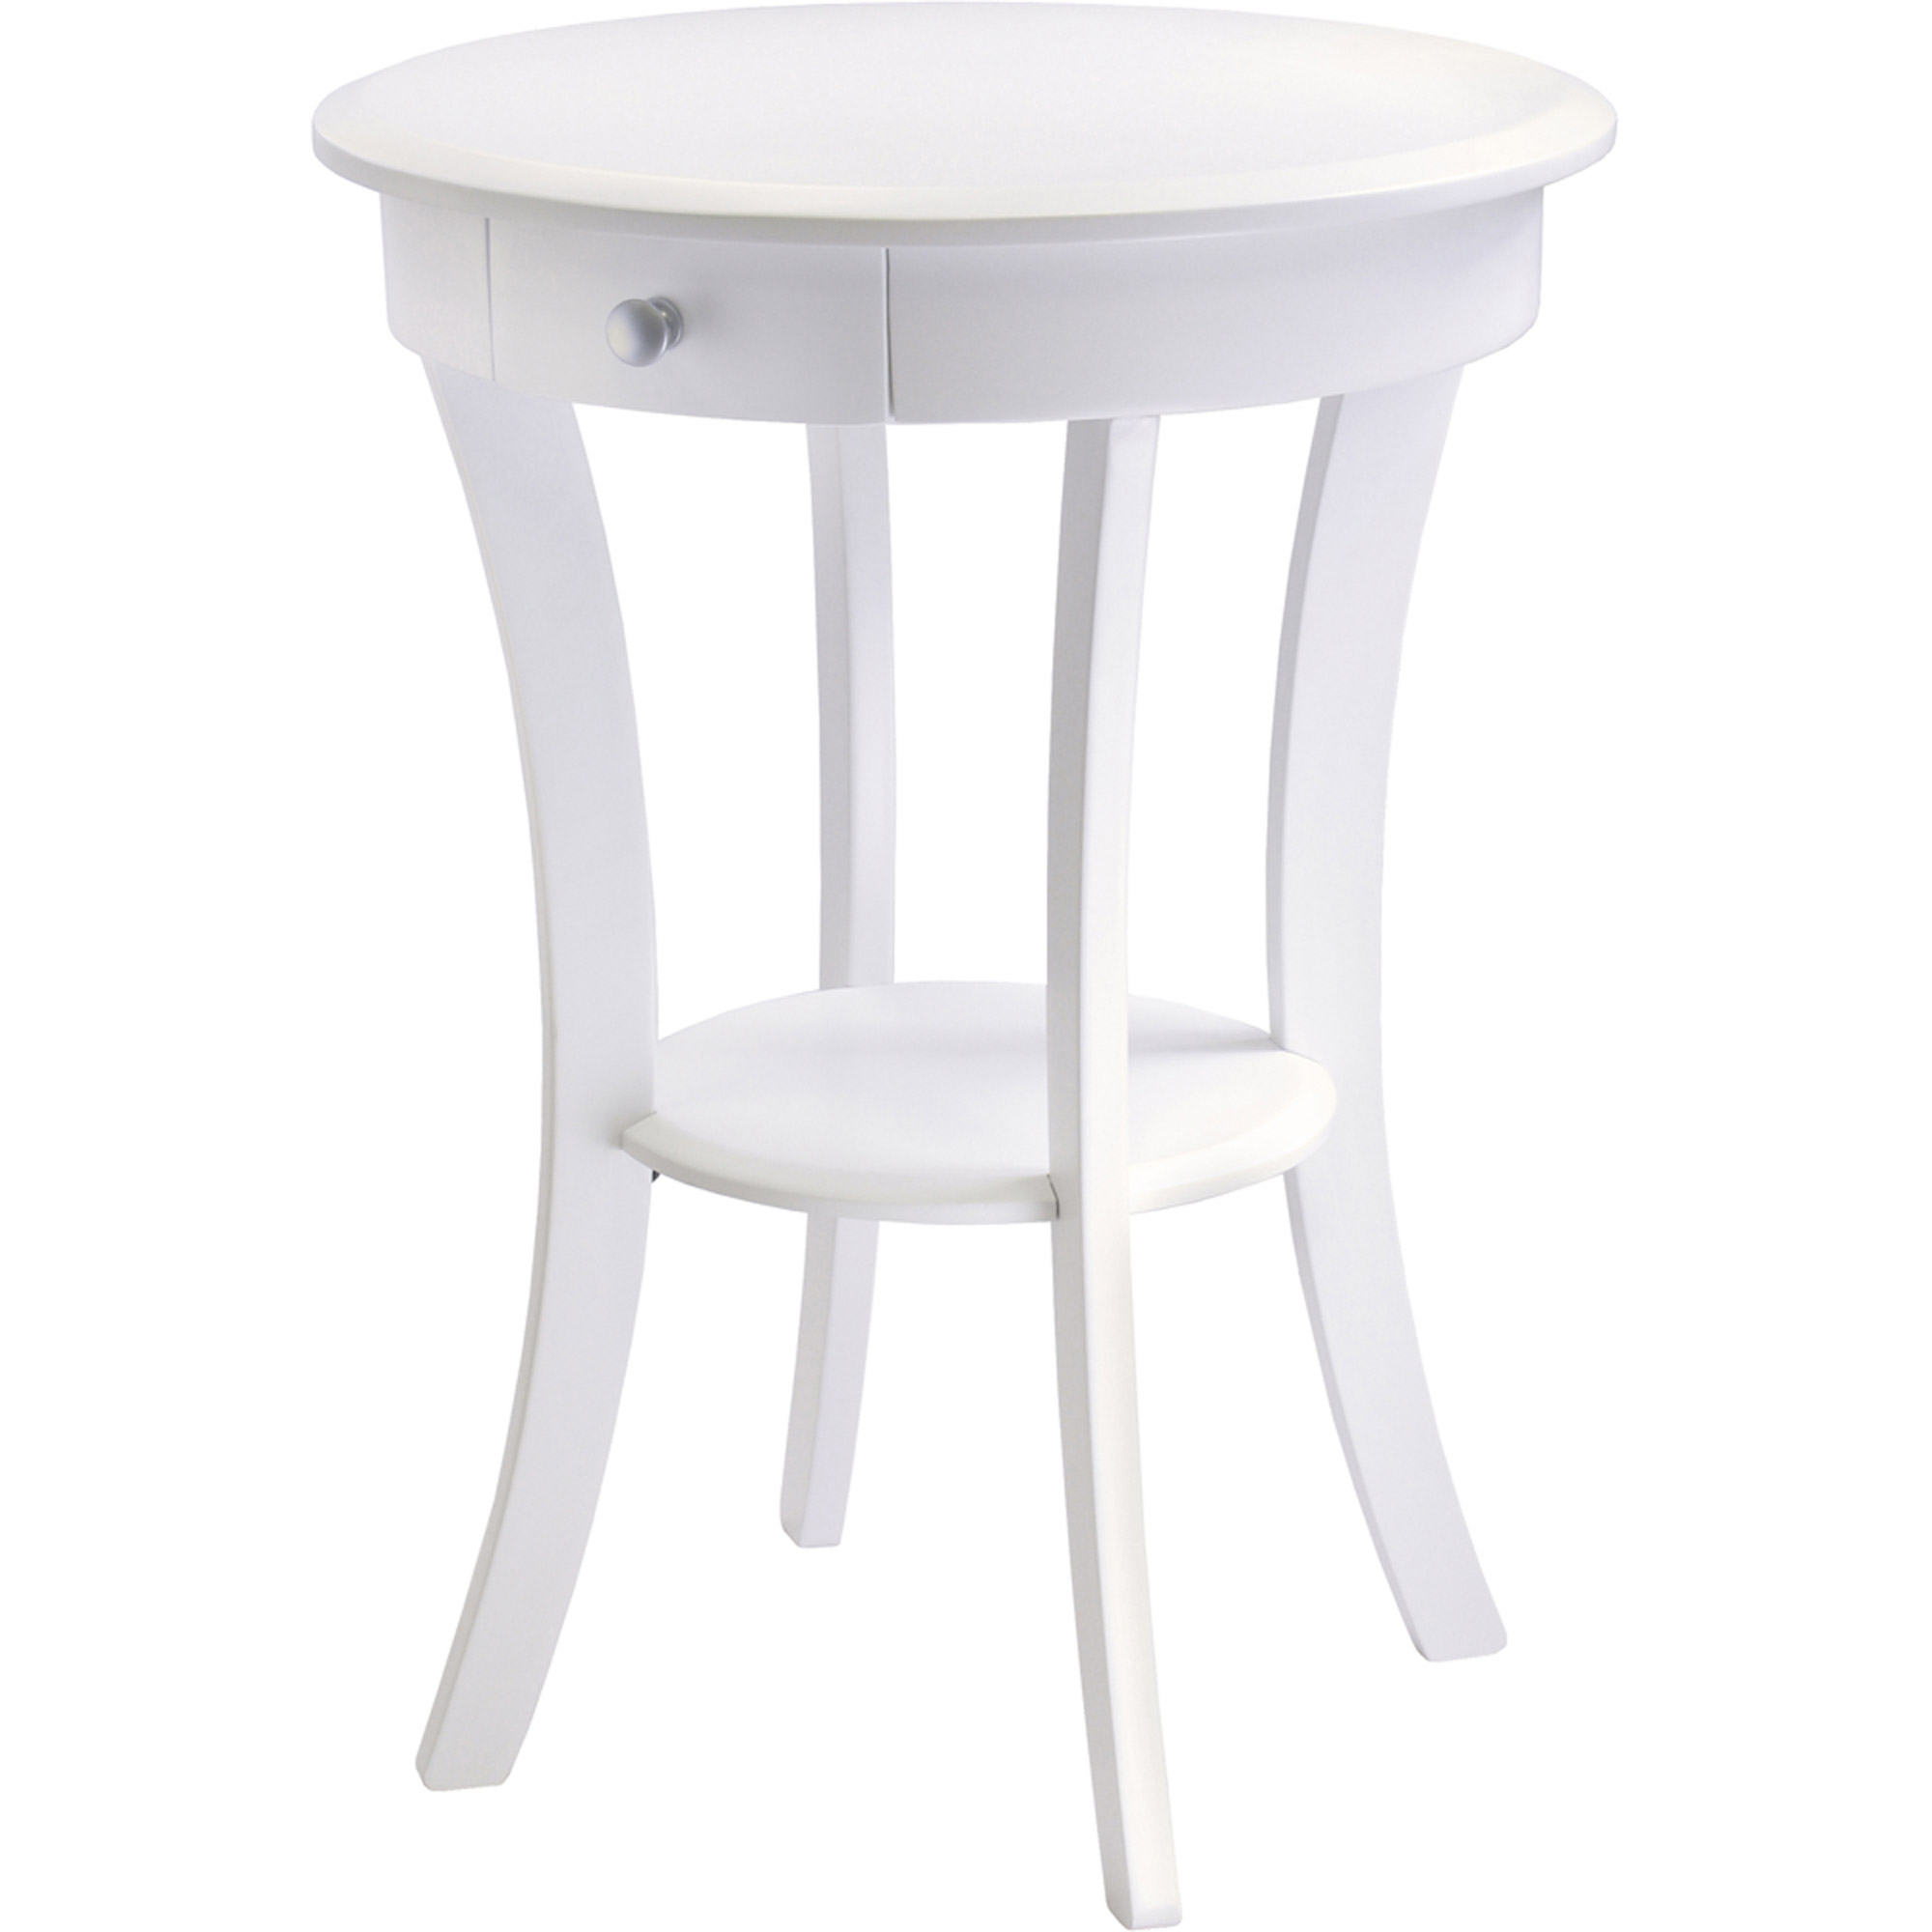 sasha round accent table wood target chairs white end with storage small chairside side drink best coffee designs buffet lamps pier one headboards contemporary tables grey chest